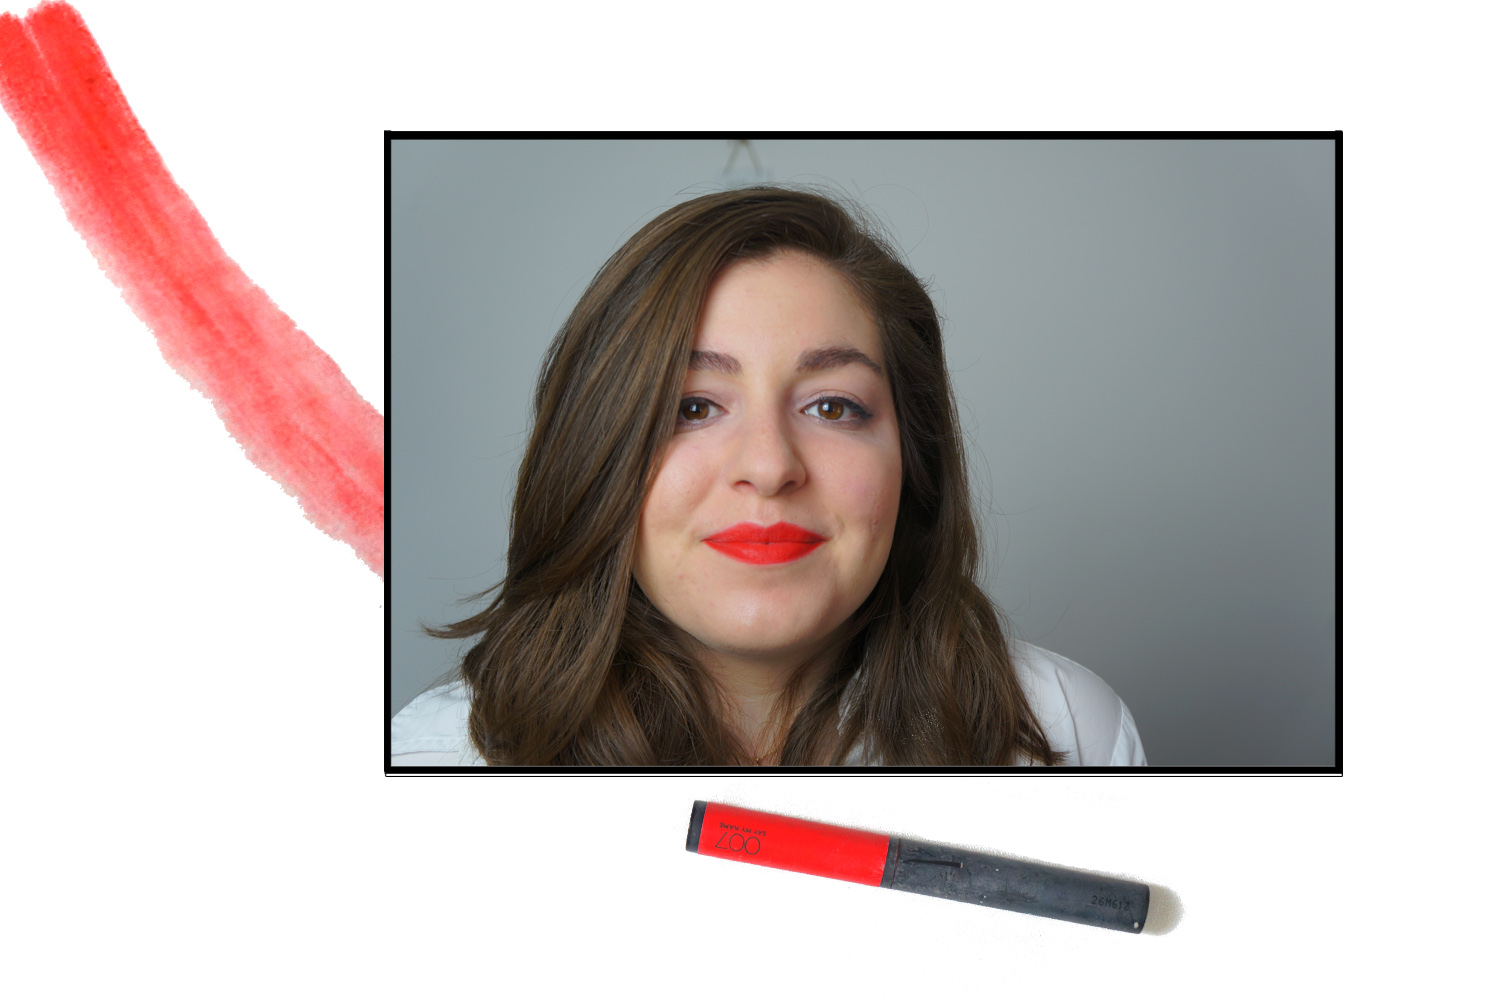 How To Create 5 S/S 17 Summer Red Lips